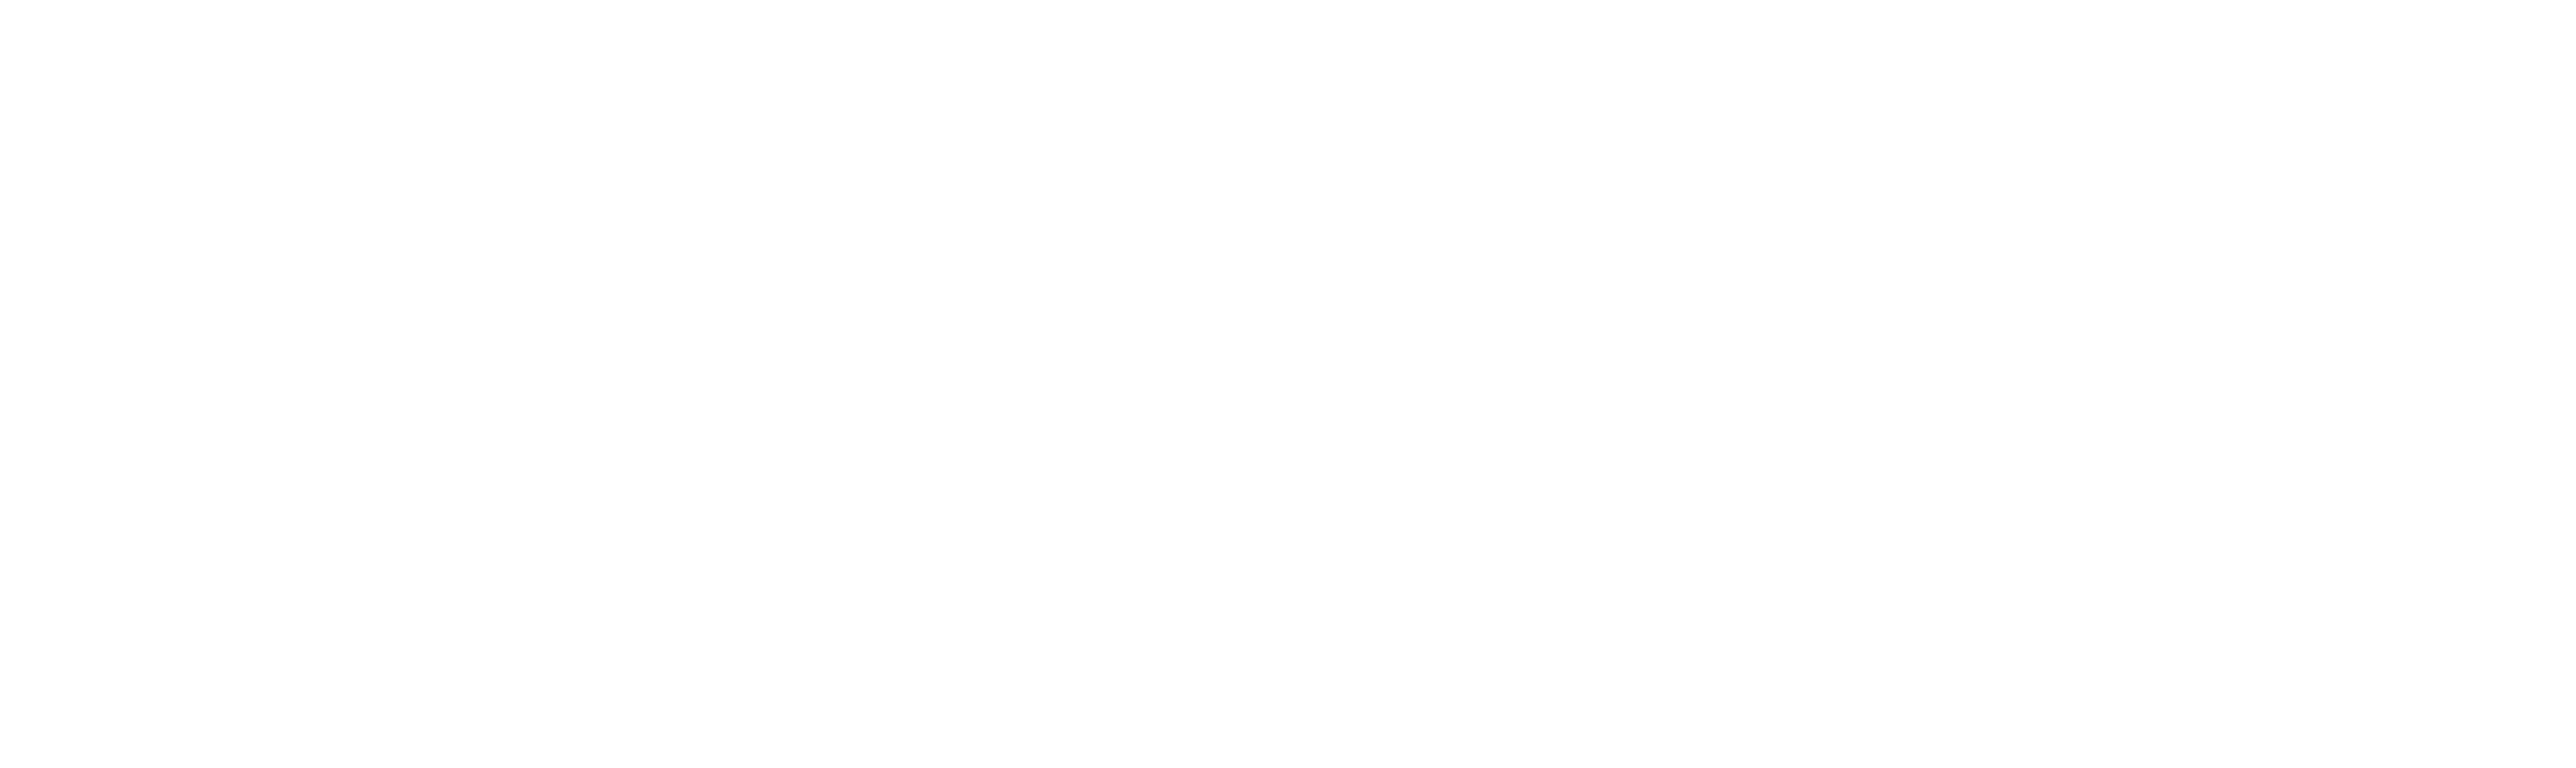 Chief Healthcare Executive